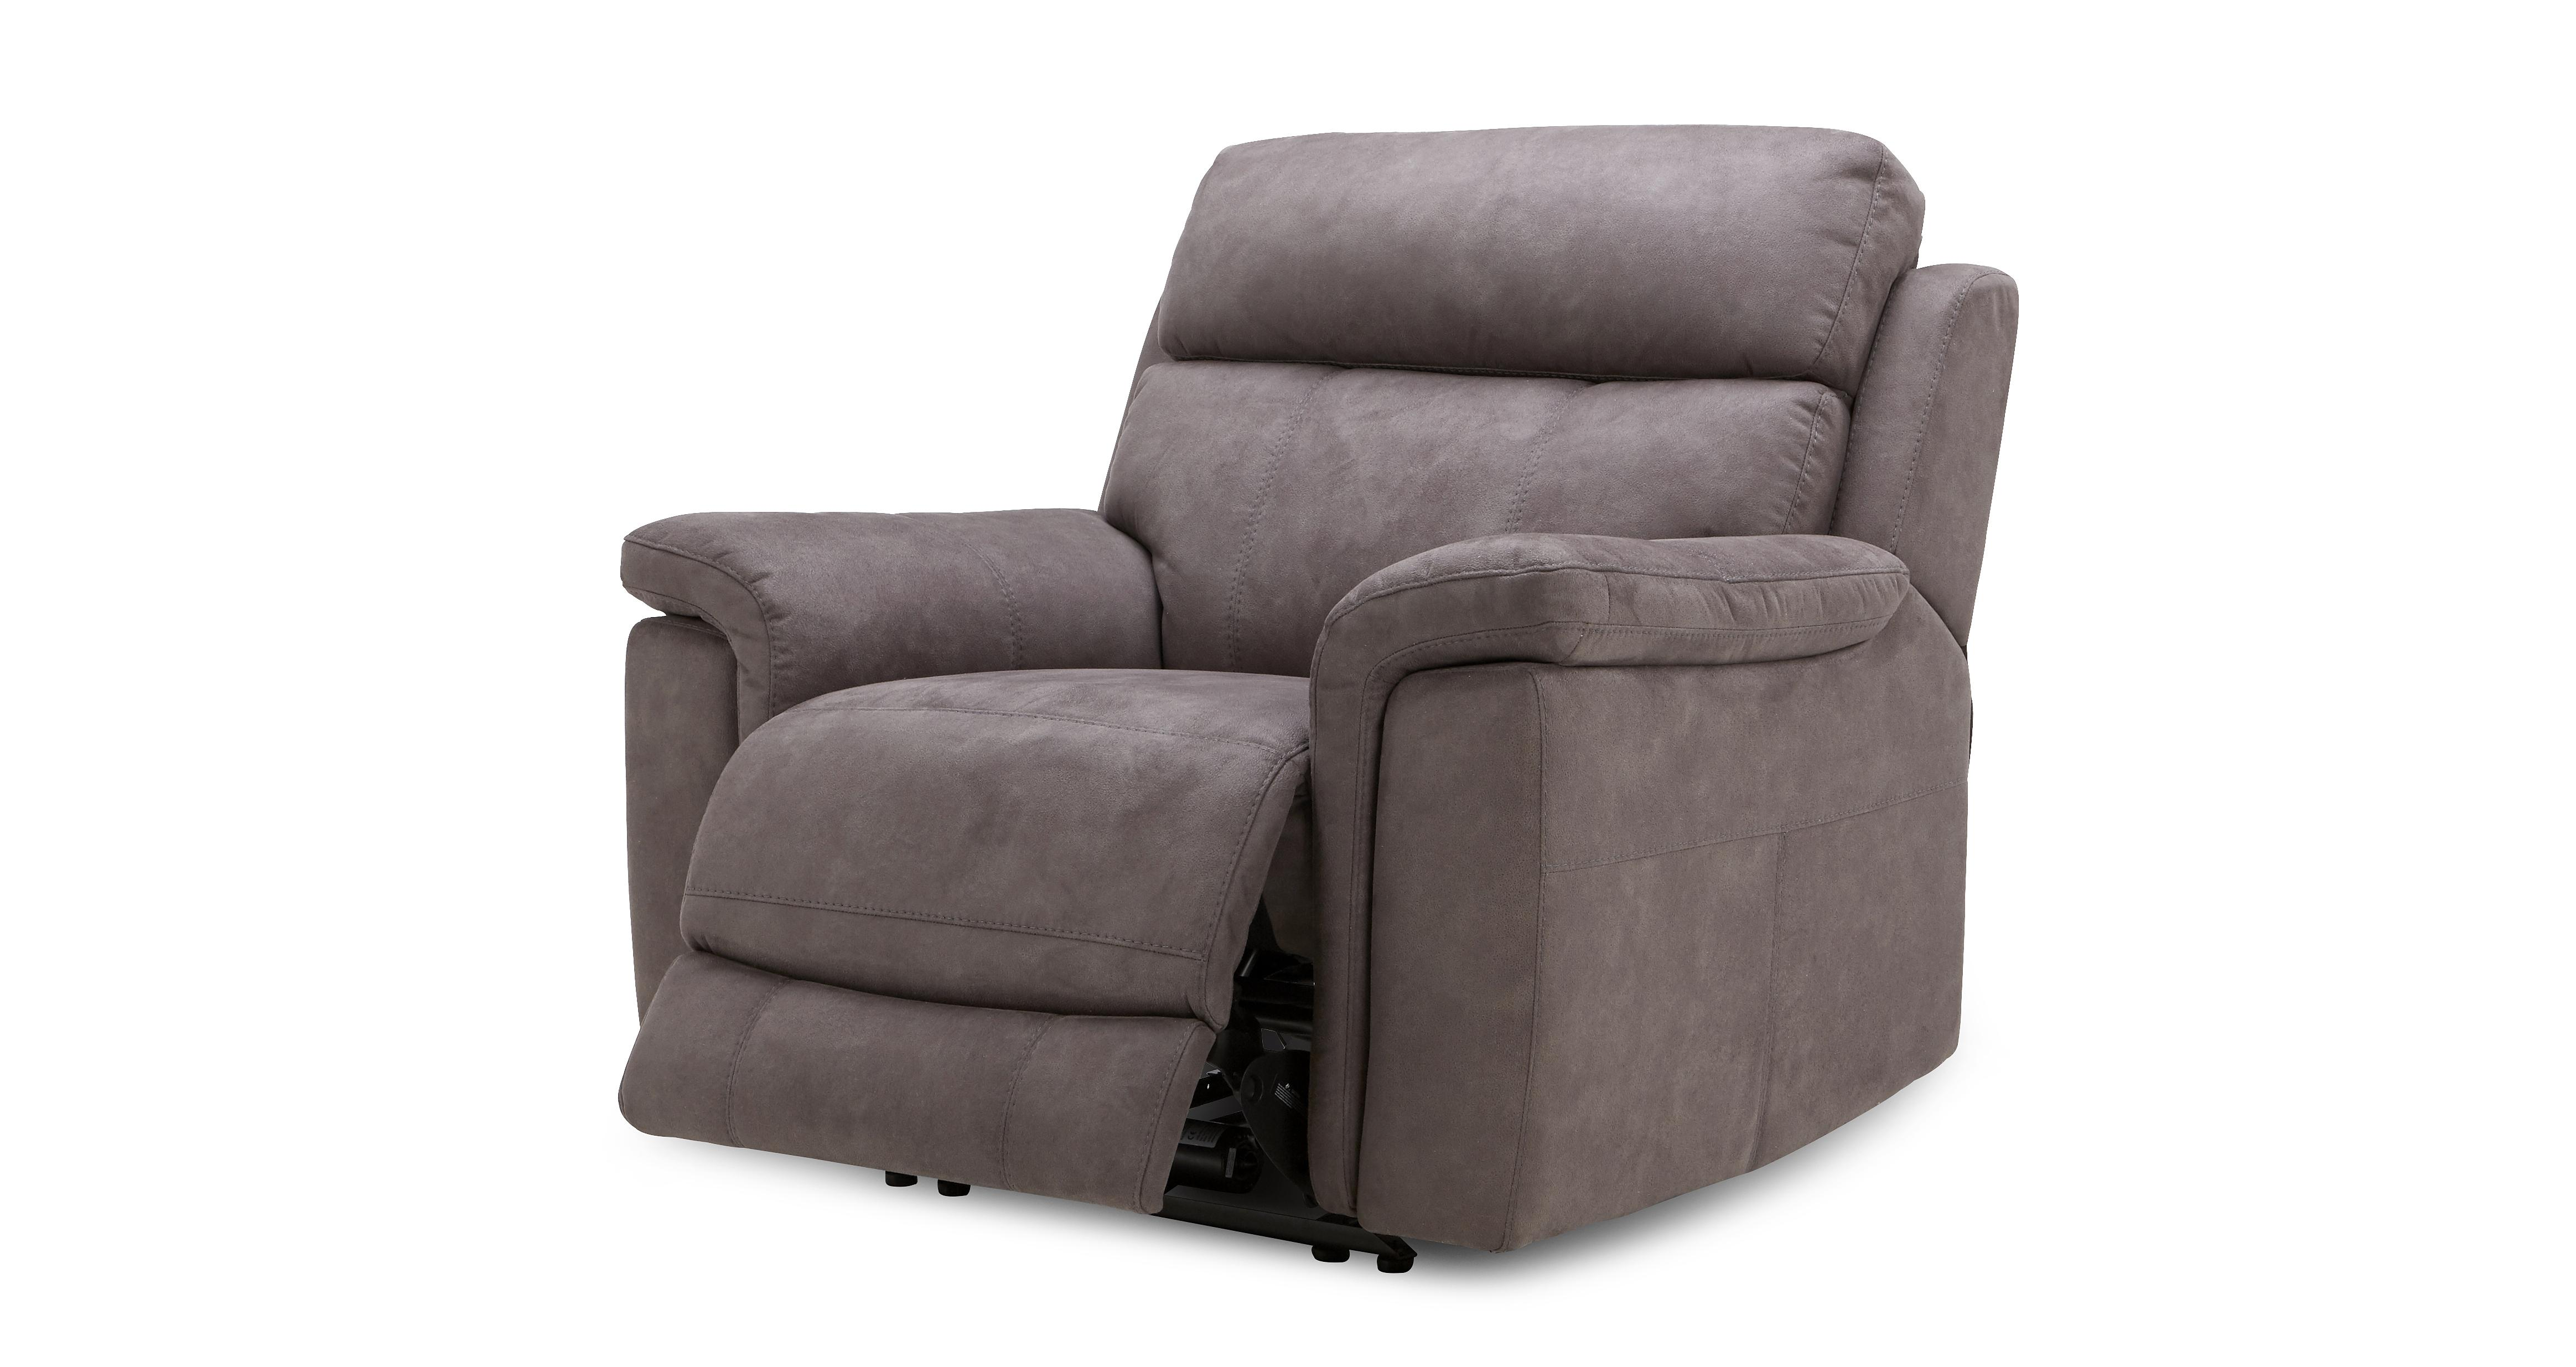 Recliner Chairs In A Range Styles For Your Home